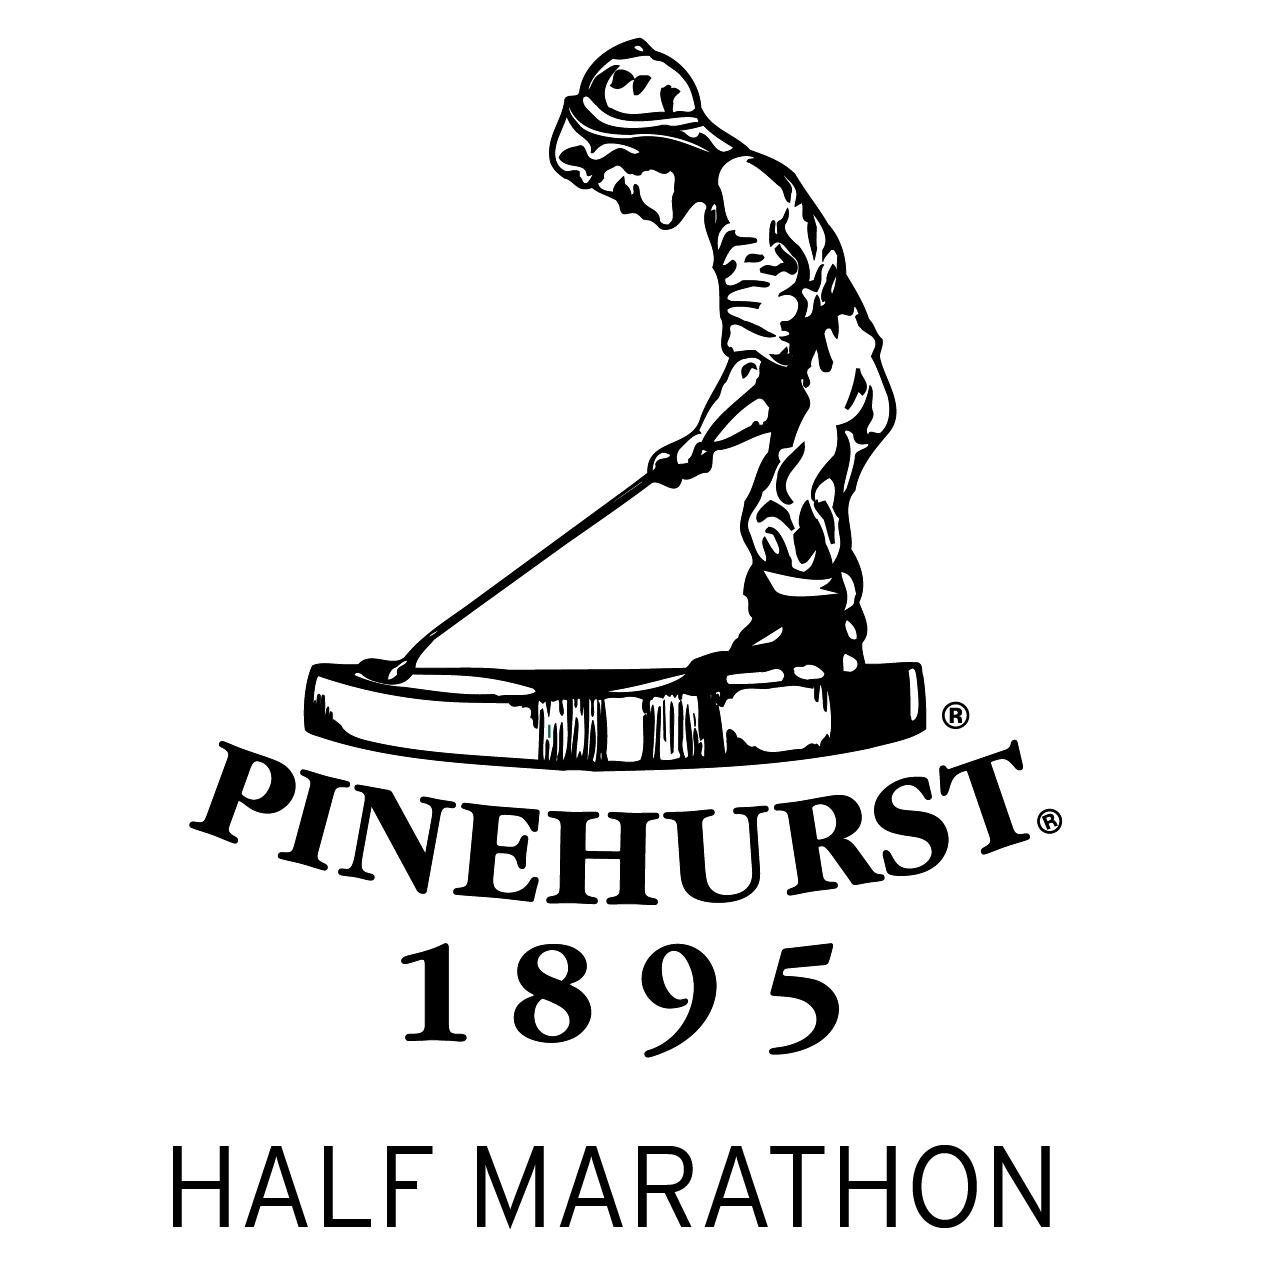 The Pinehurst Half Marathonlogo